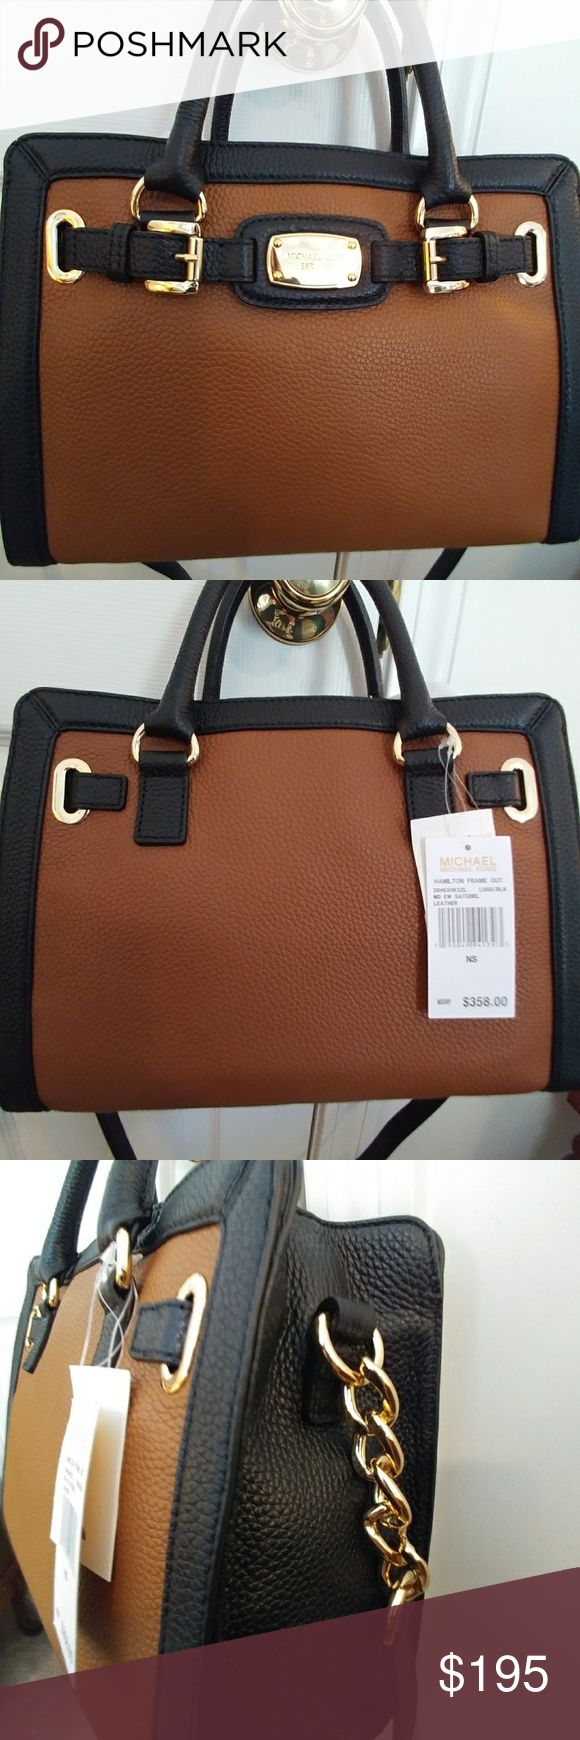 NWT Michael Kors e/w Hamilton frameout BNWT Michael Kors medium e/w Hamilton in limited edition frameout in black and luggage. Pebble leather and gold hardware. Real looker. Smokefree, Petfree home. Michael Kors Bags Satchels